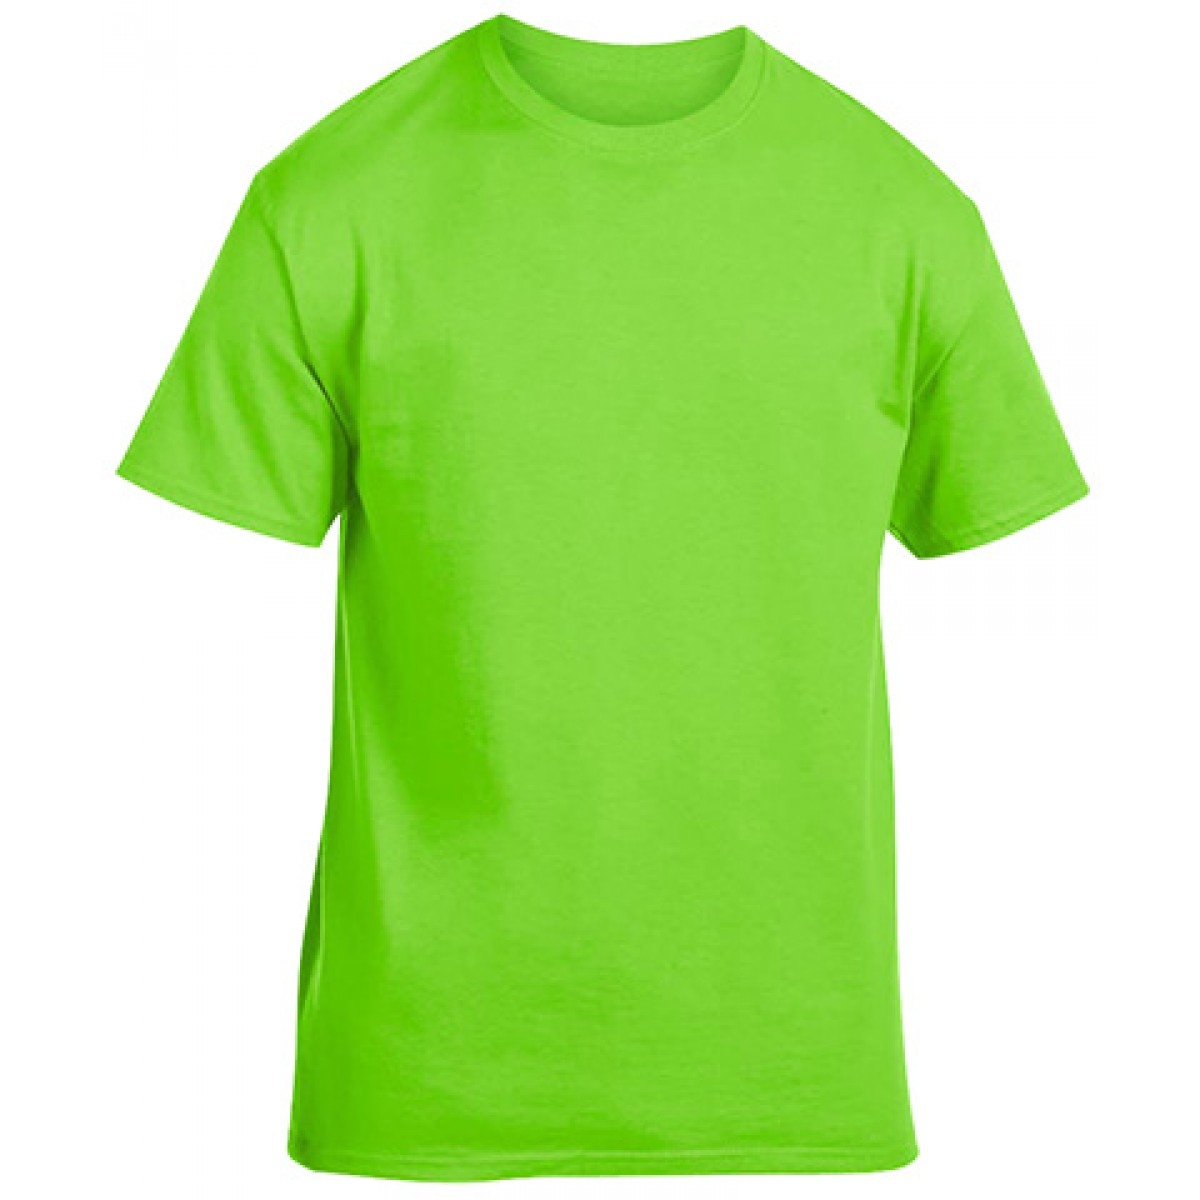 Soft 100% Cotton T-Shirt-Neon Green-2XL